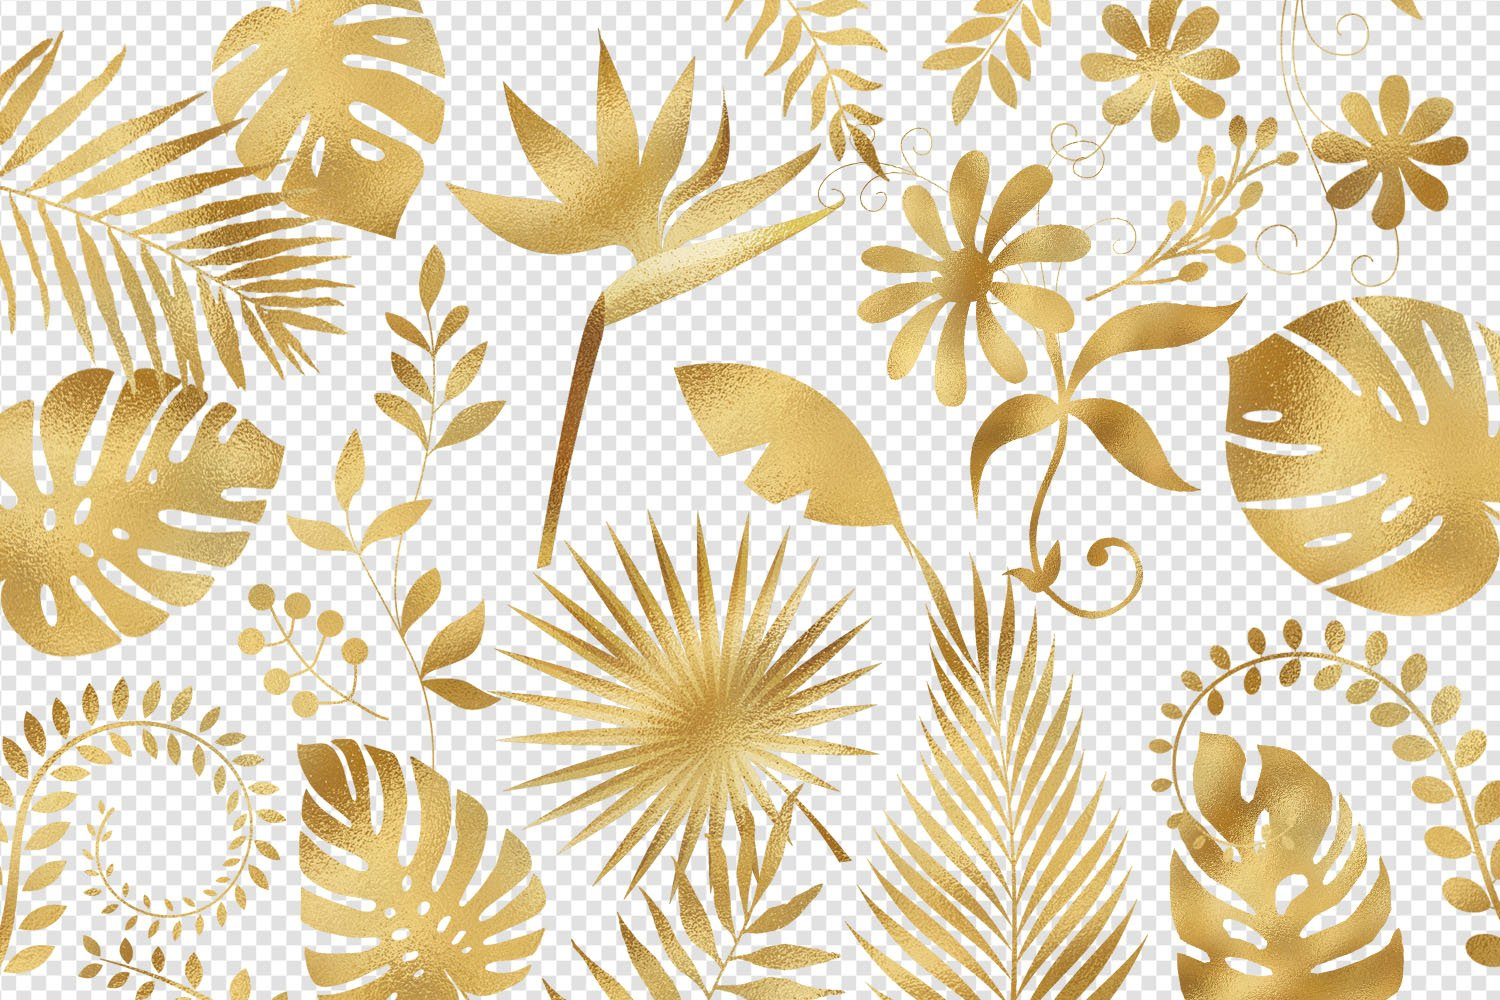 Gold Foil Tropical Leaves Clip Art example image 2